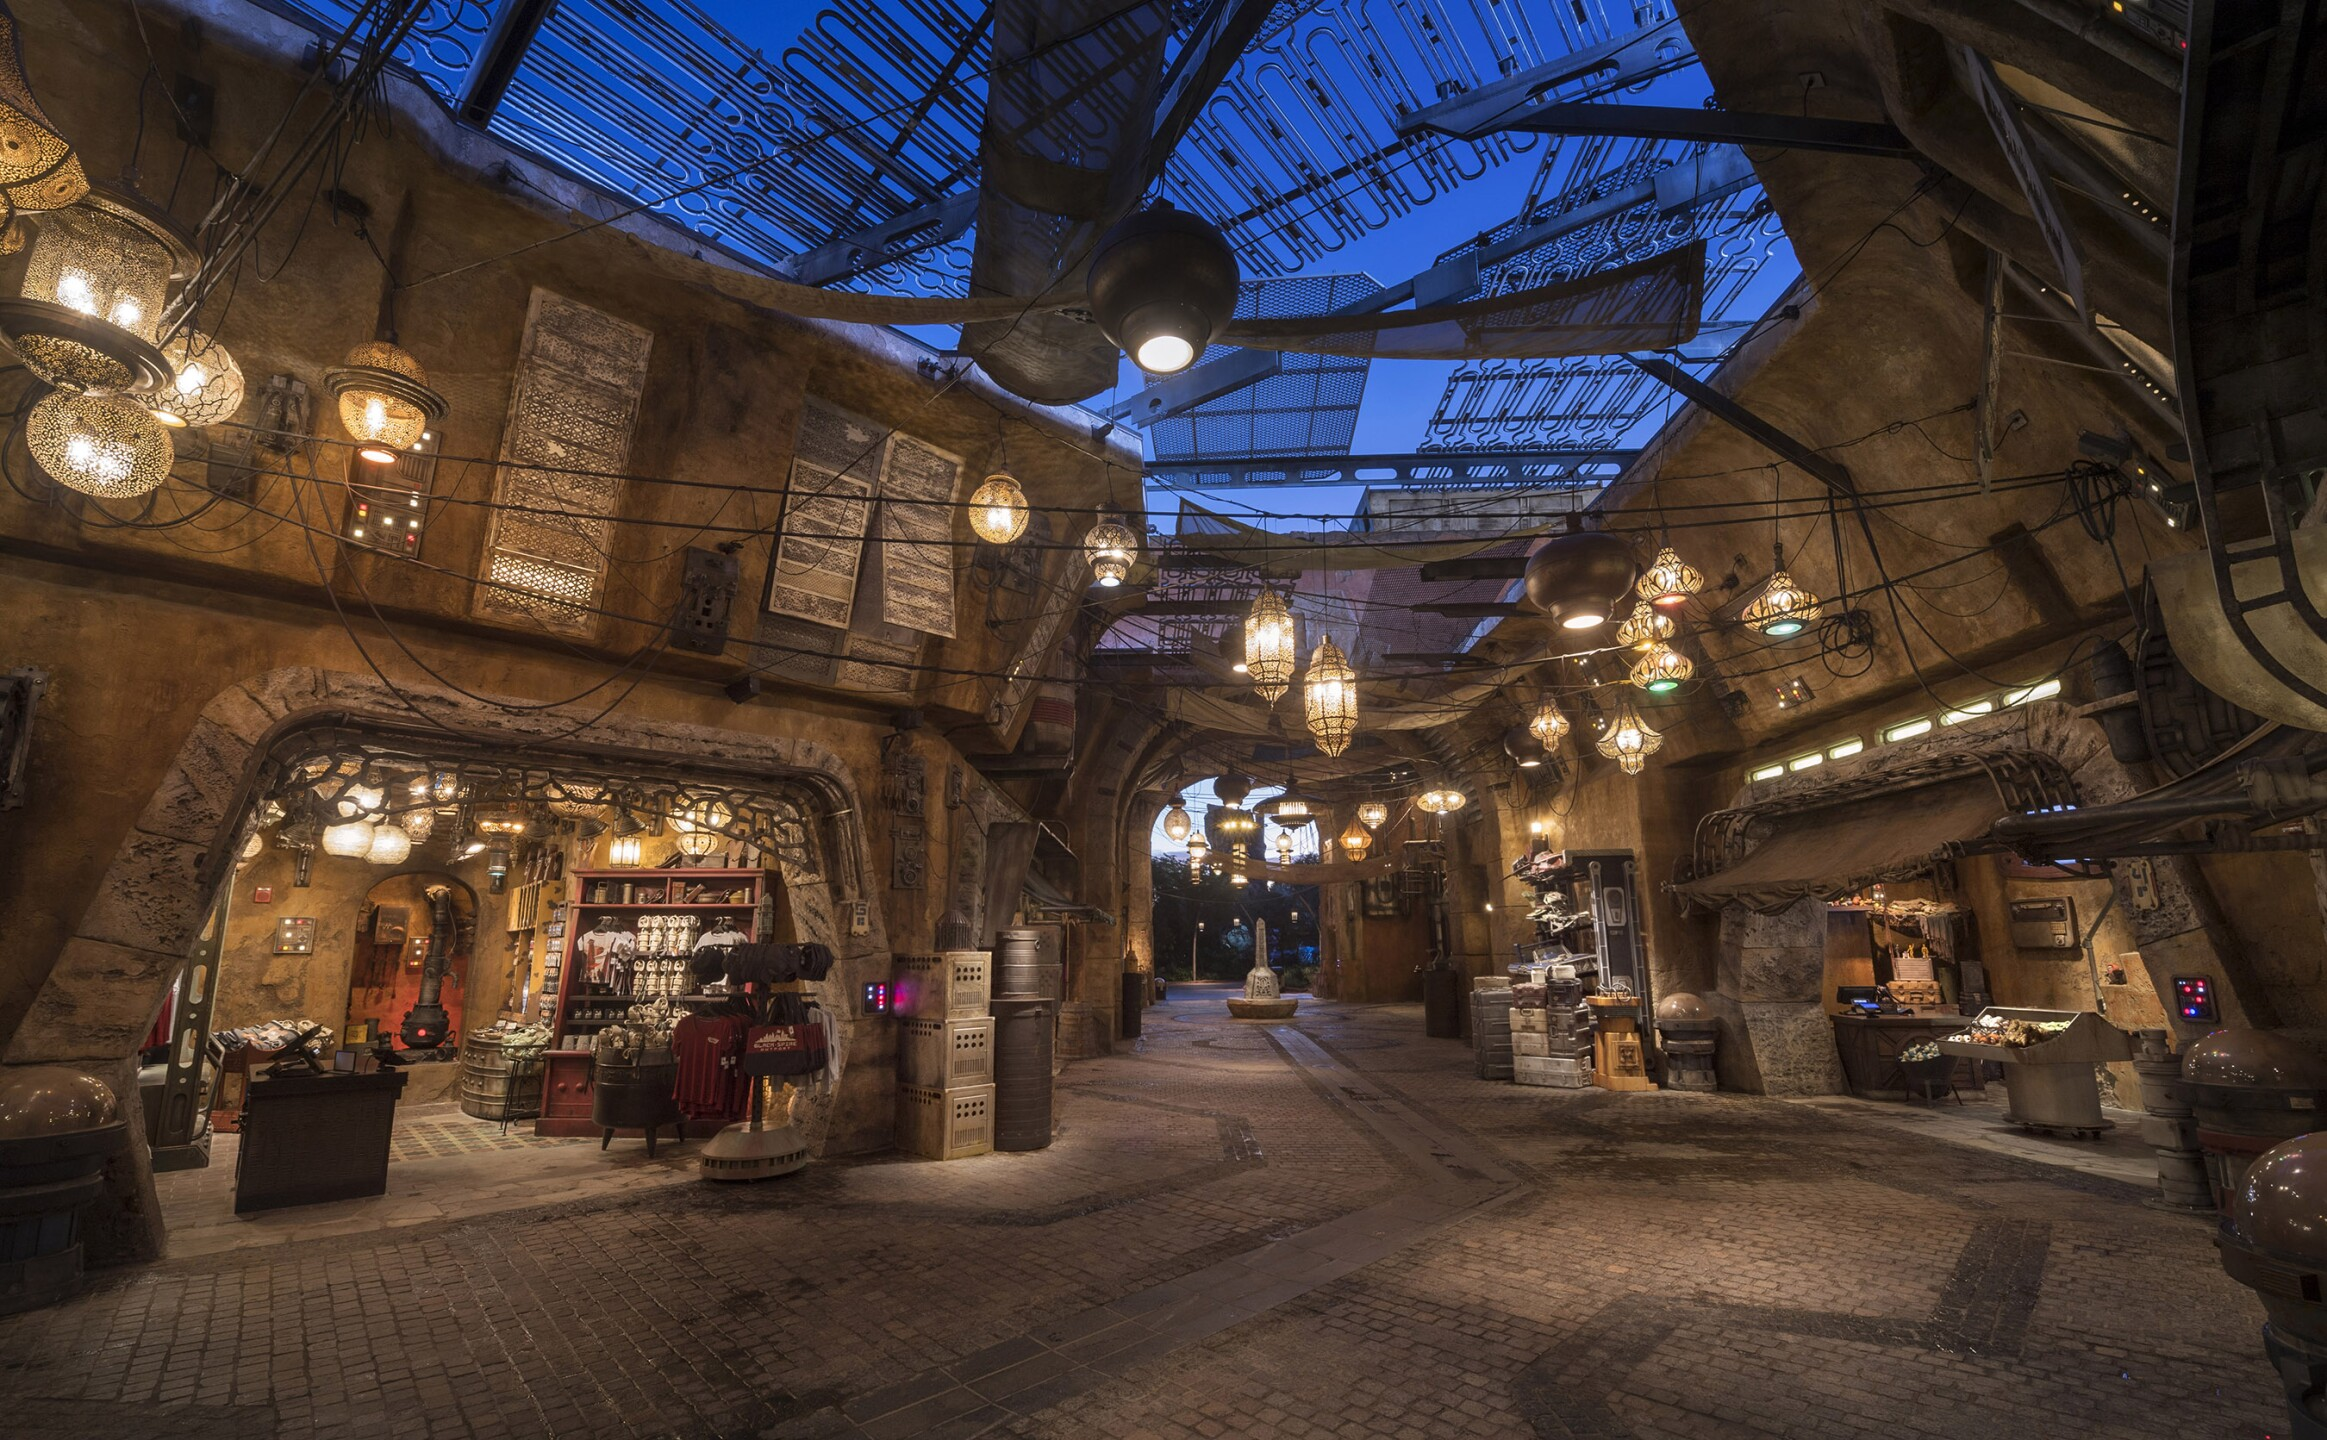 Black Spire Outpost Marketplace in Star Wars: Galaxy's Edge